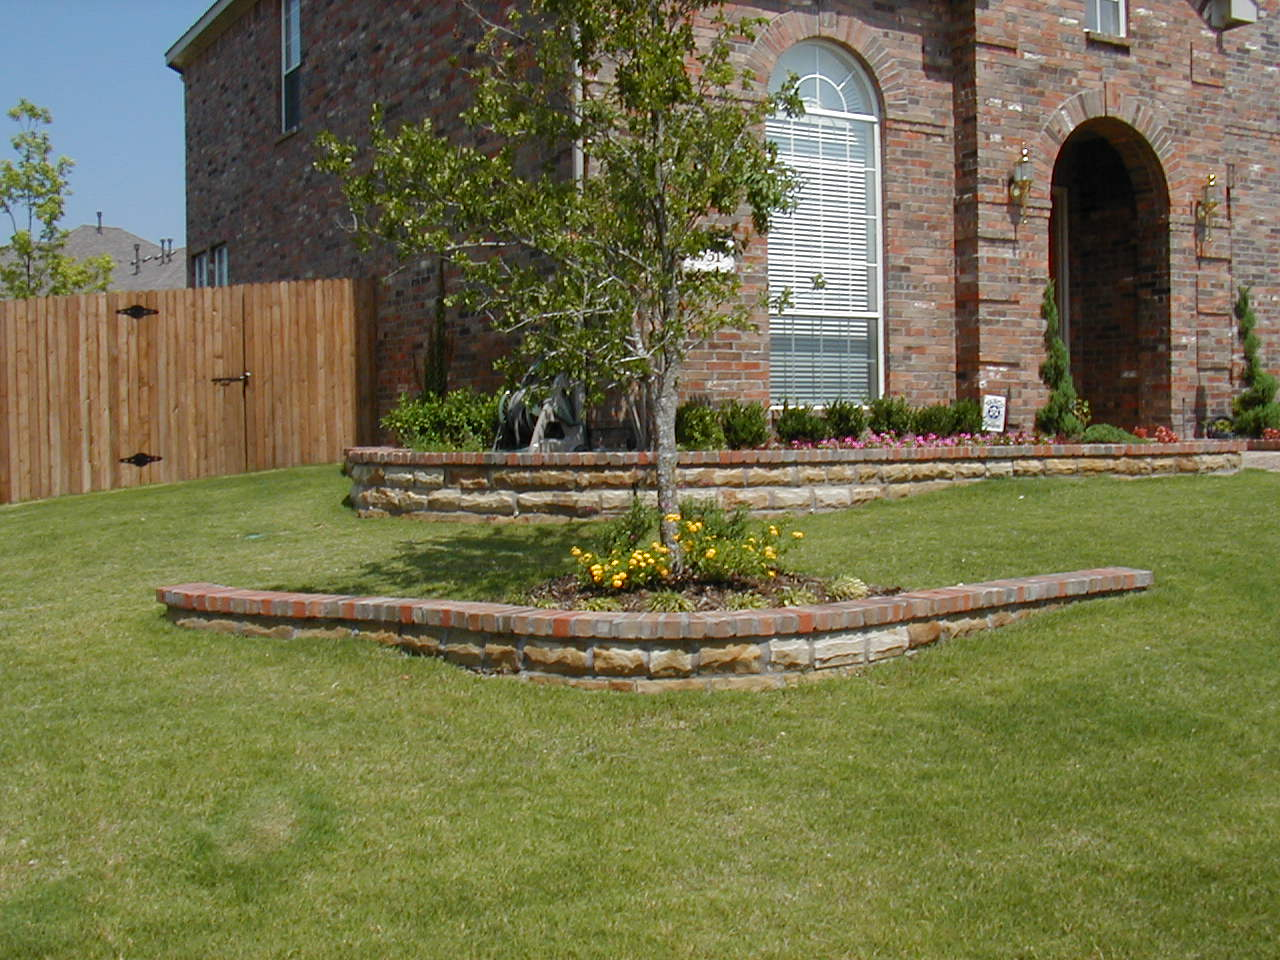 Landscape Edging Ideas | Brick Edging Home Depot | Brick Landscape Edging Ideas